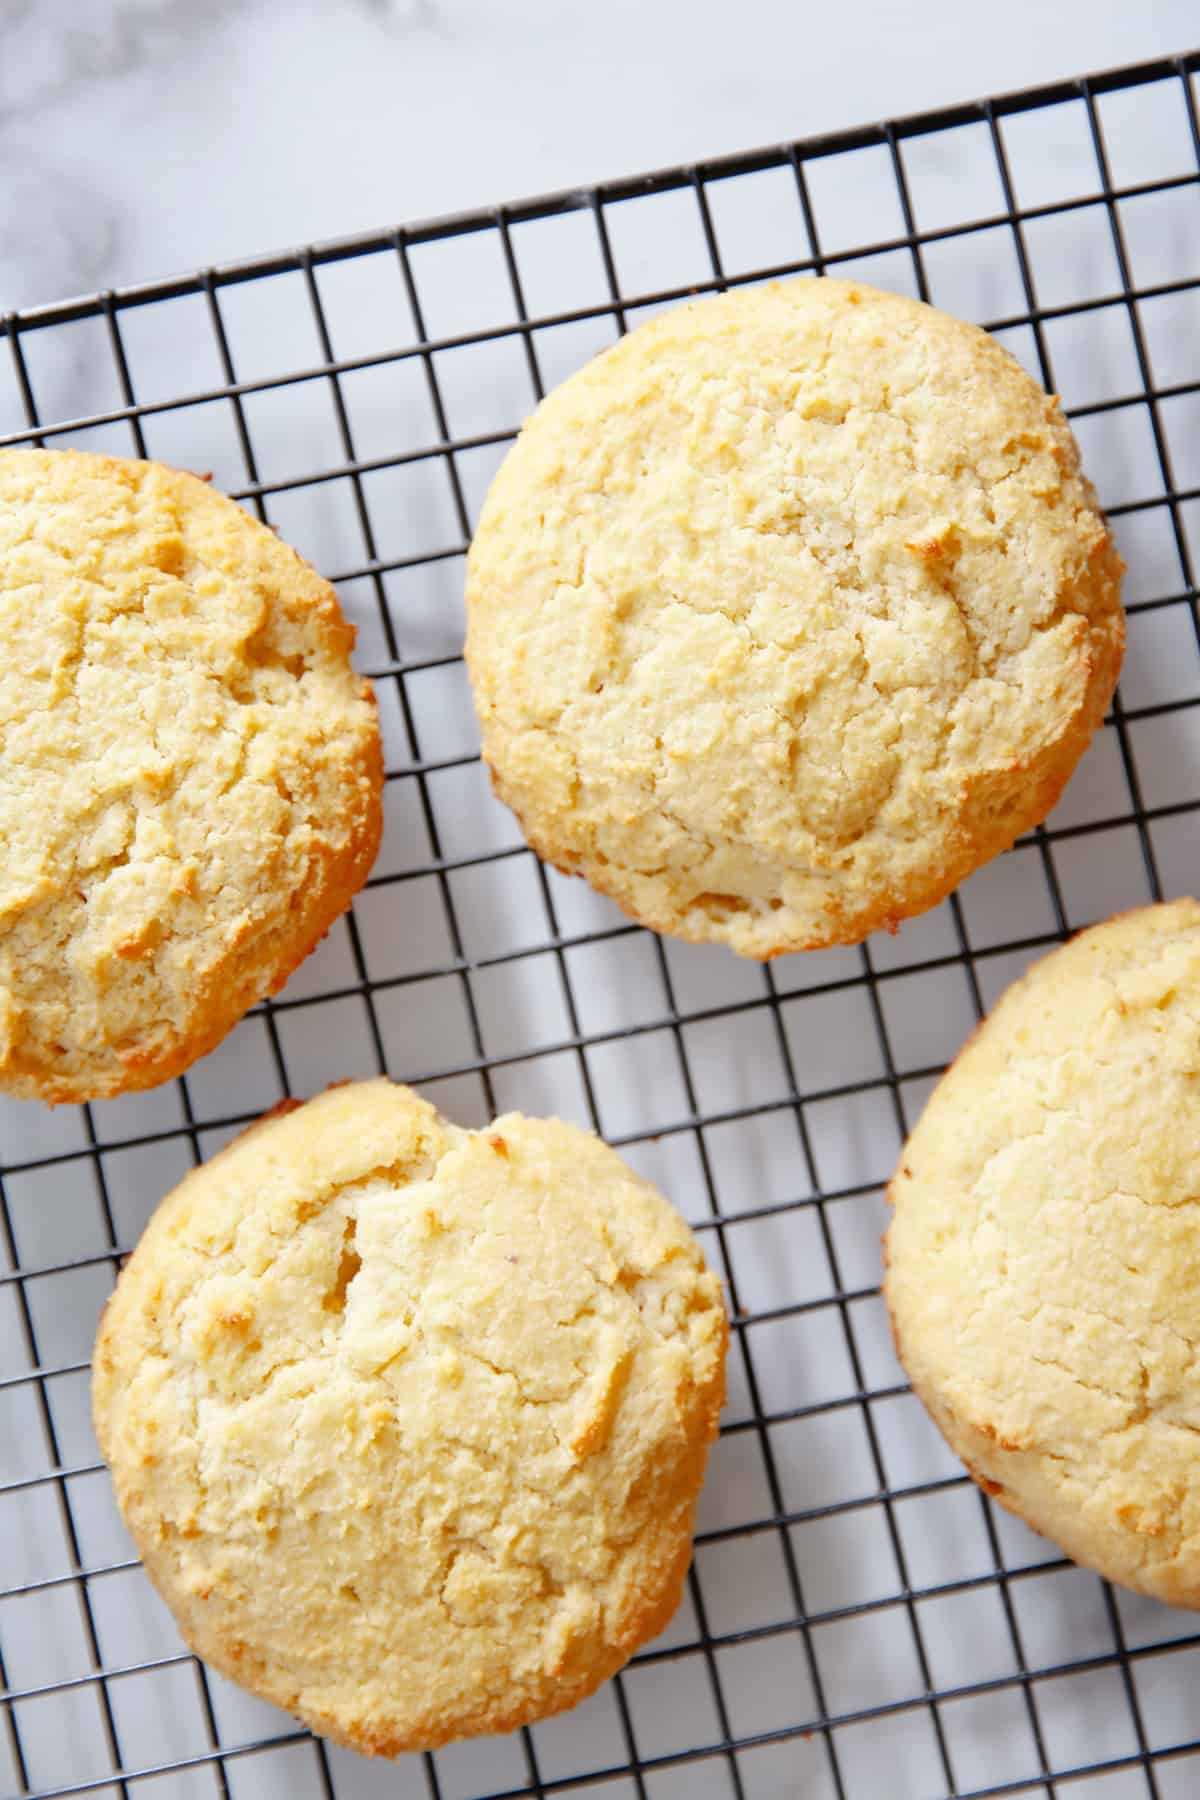 gf biscuits on a cooling rack